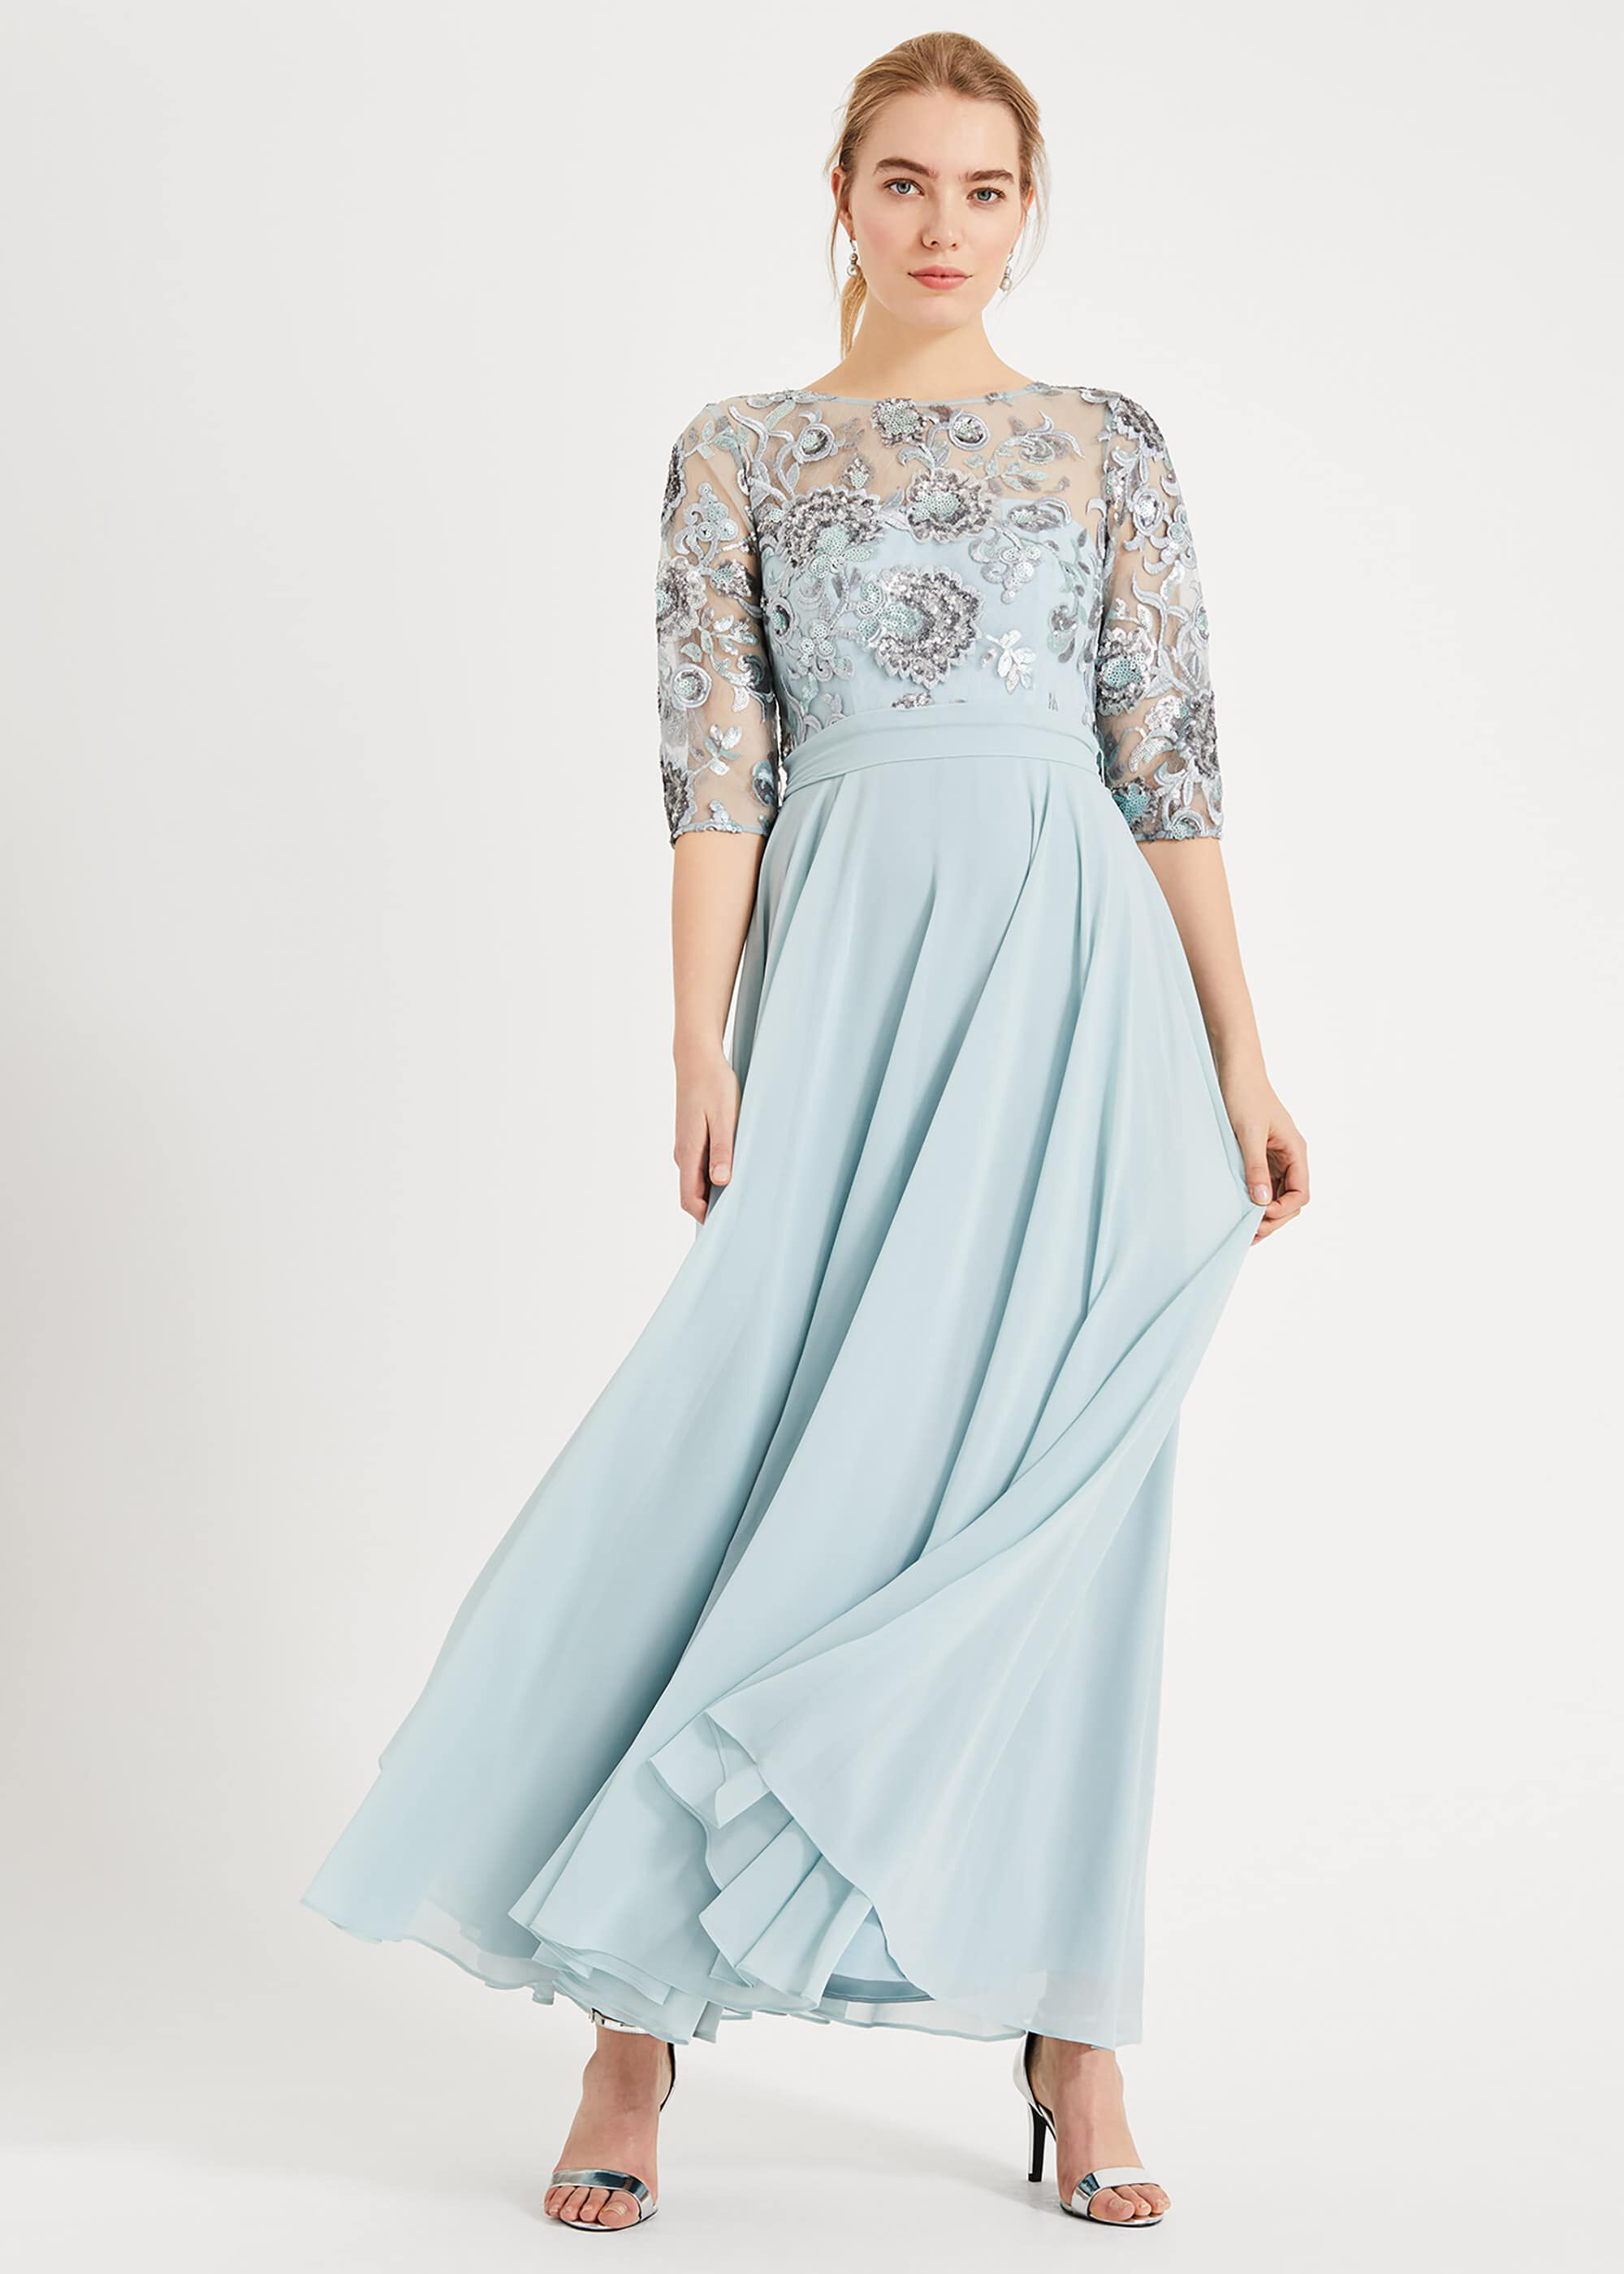 Phase Eight Clarissa Sequin Maxi Dress, Blue, Maxi, Occasion Dress